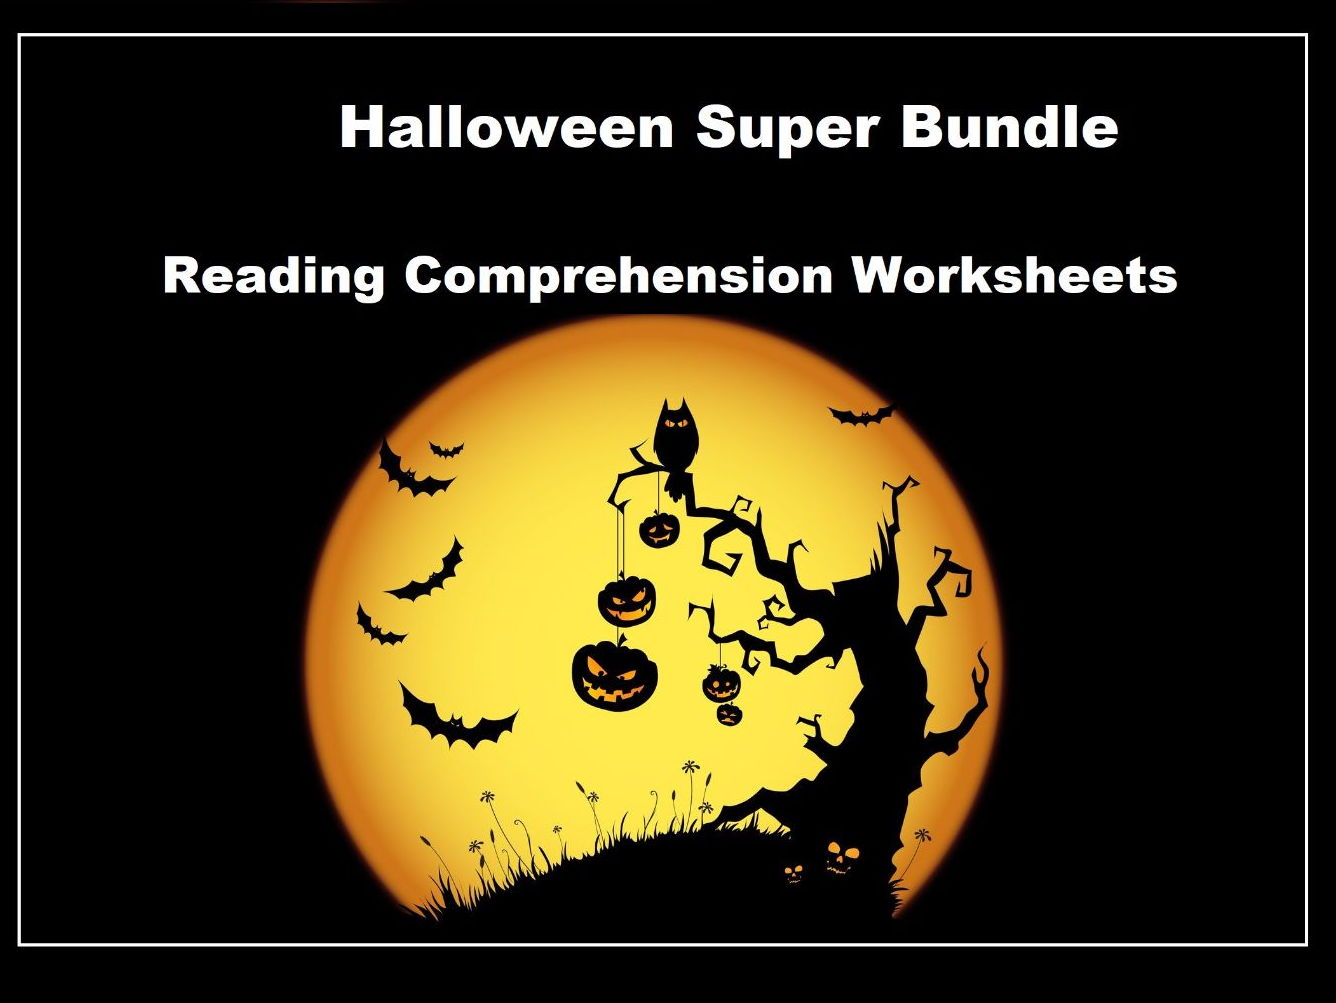 Halloween Reading Comprehension Worksheets - Super Bundle!